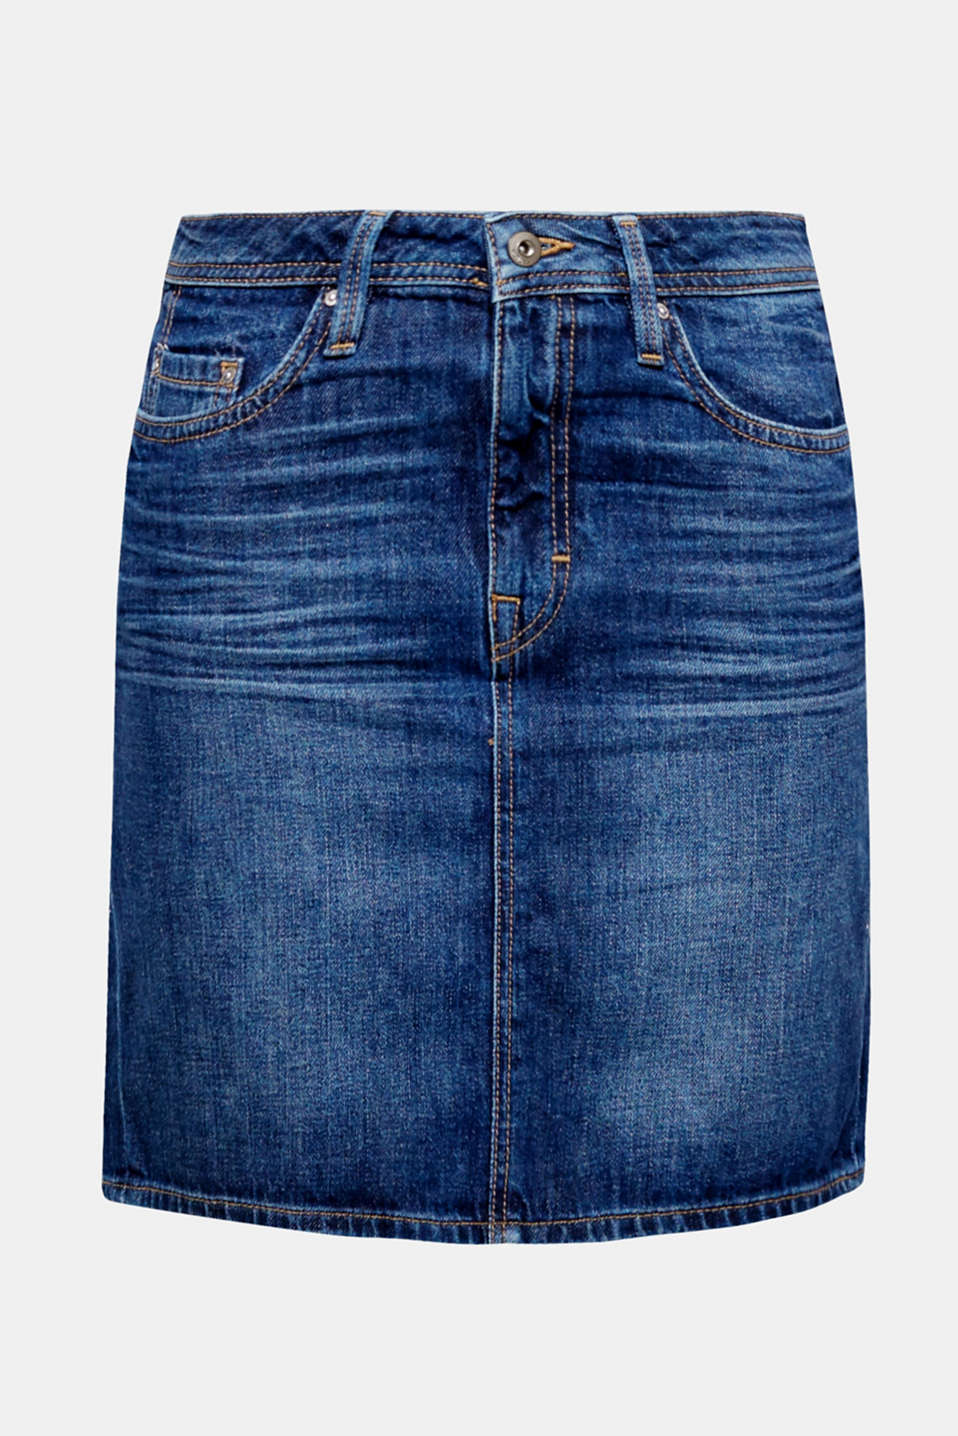 We love denim! The classic details and worn wash make this mini skirt super special.